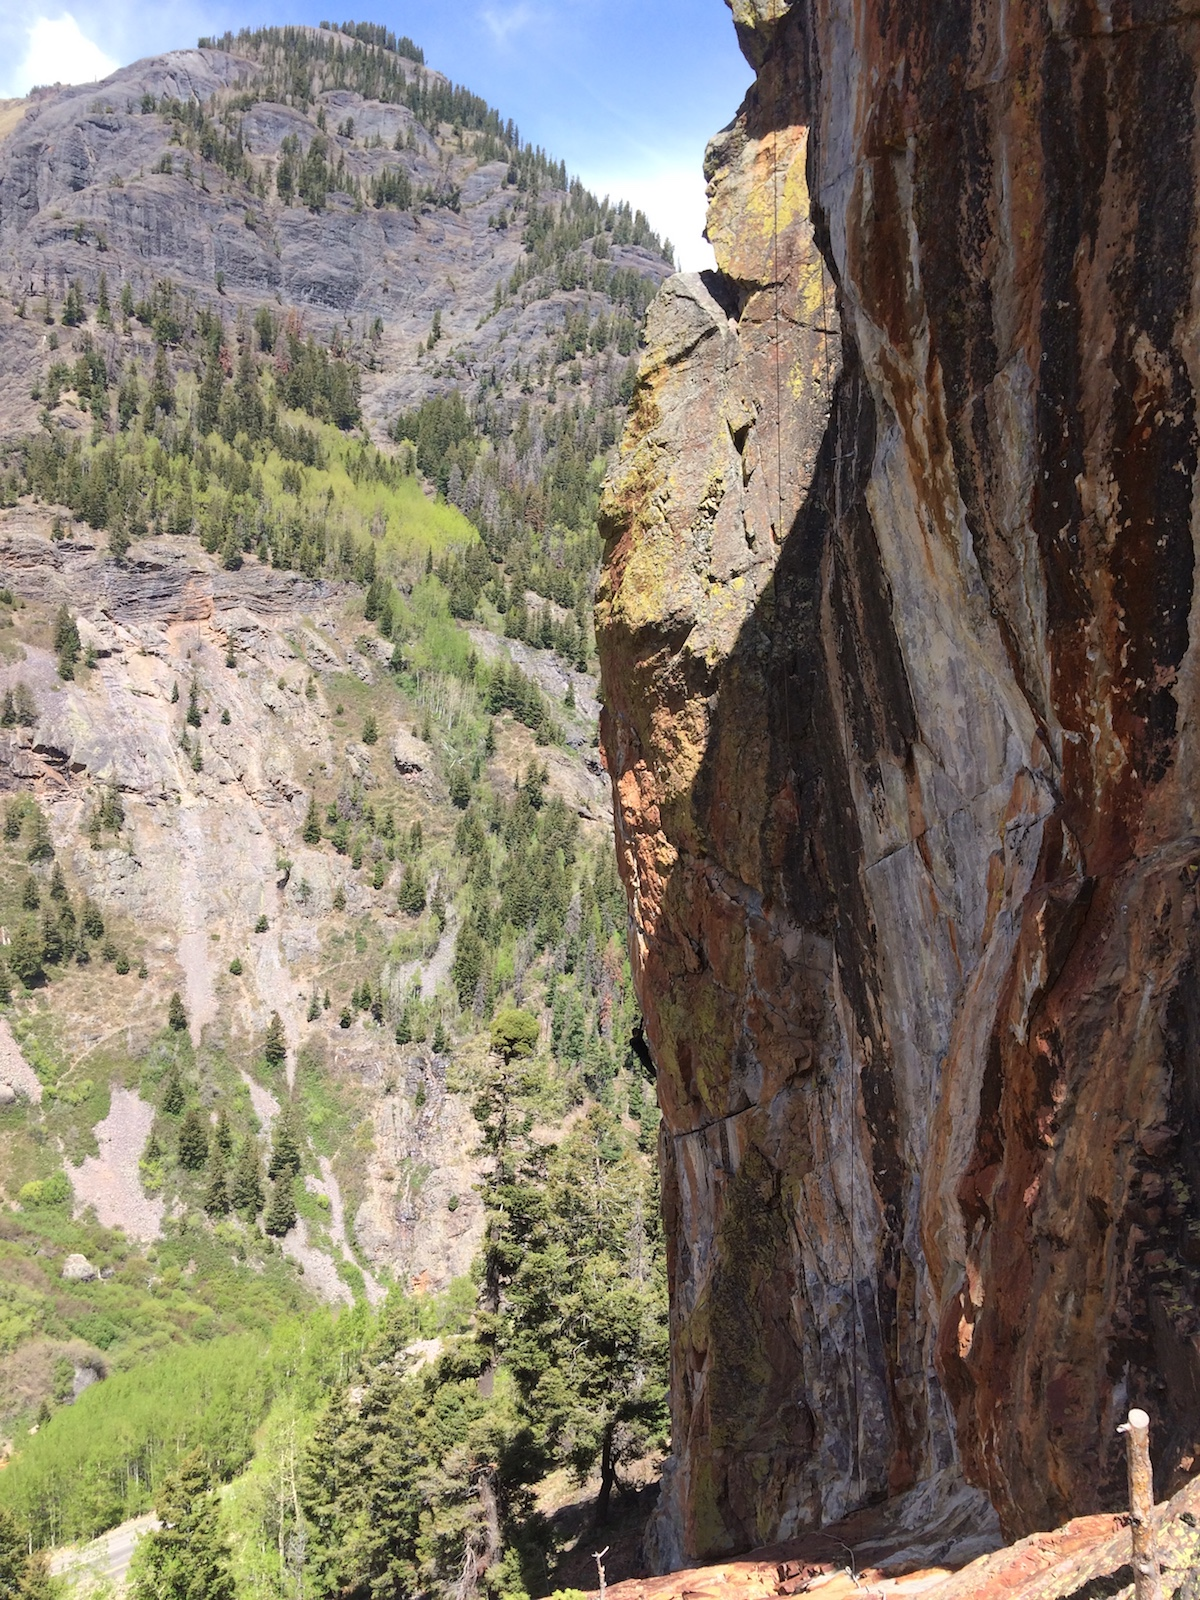 The Foehn Brise Pants were ideal for the chilly spring temps at the Techno Crag (ca. 9,000') above Ouray, Colorado, last May. Here the author enjoys the classic arete of All Night Rave (5.12b) with numb fingers. [Photo] Mandi Franz